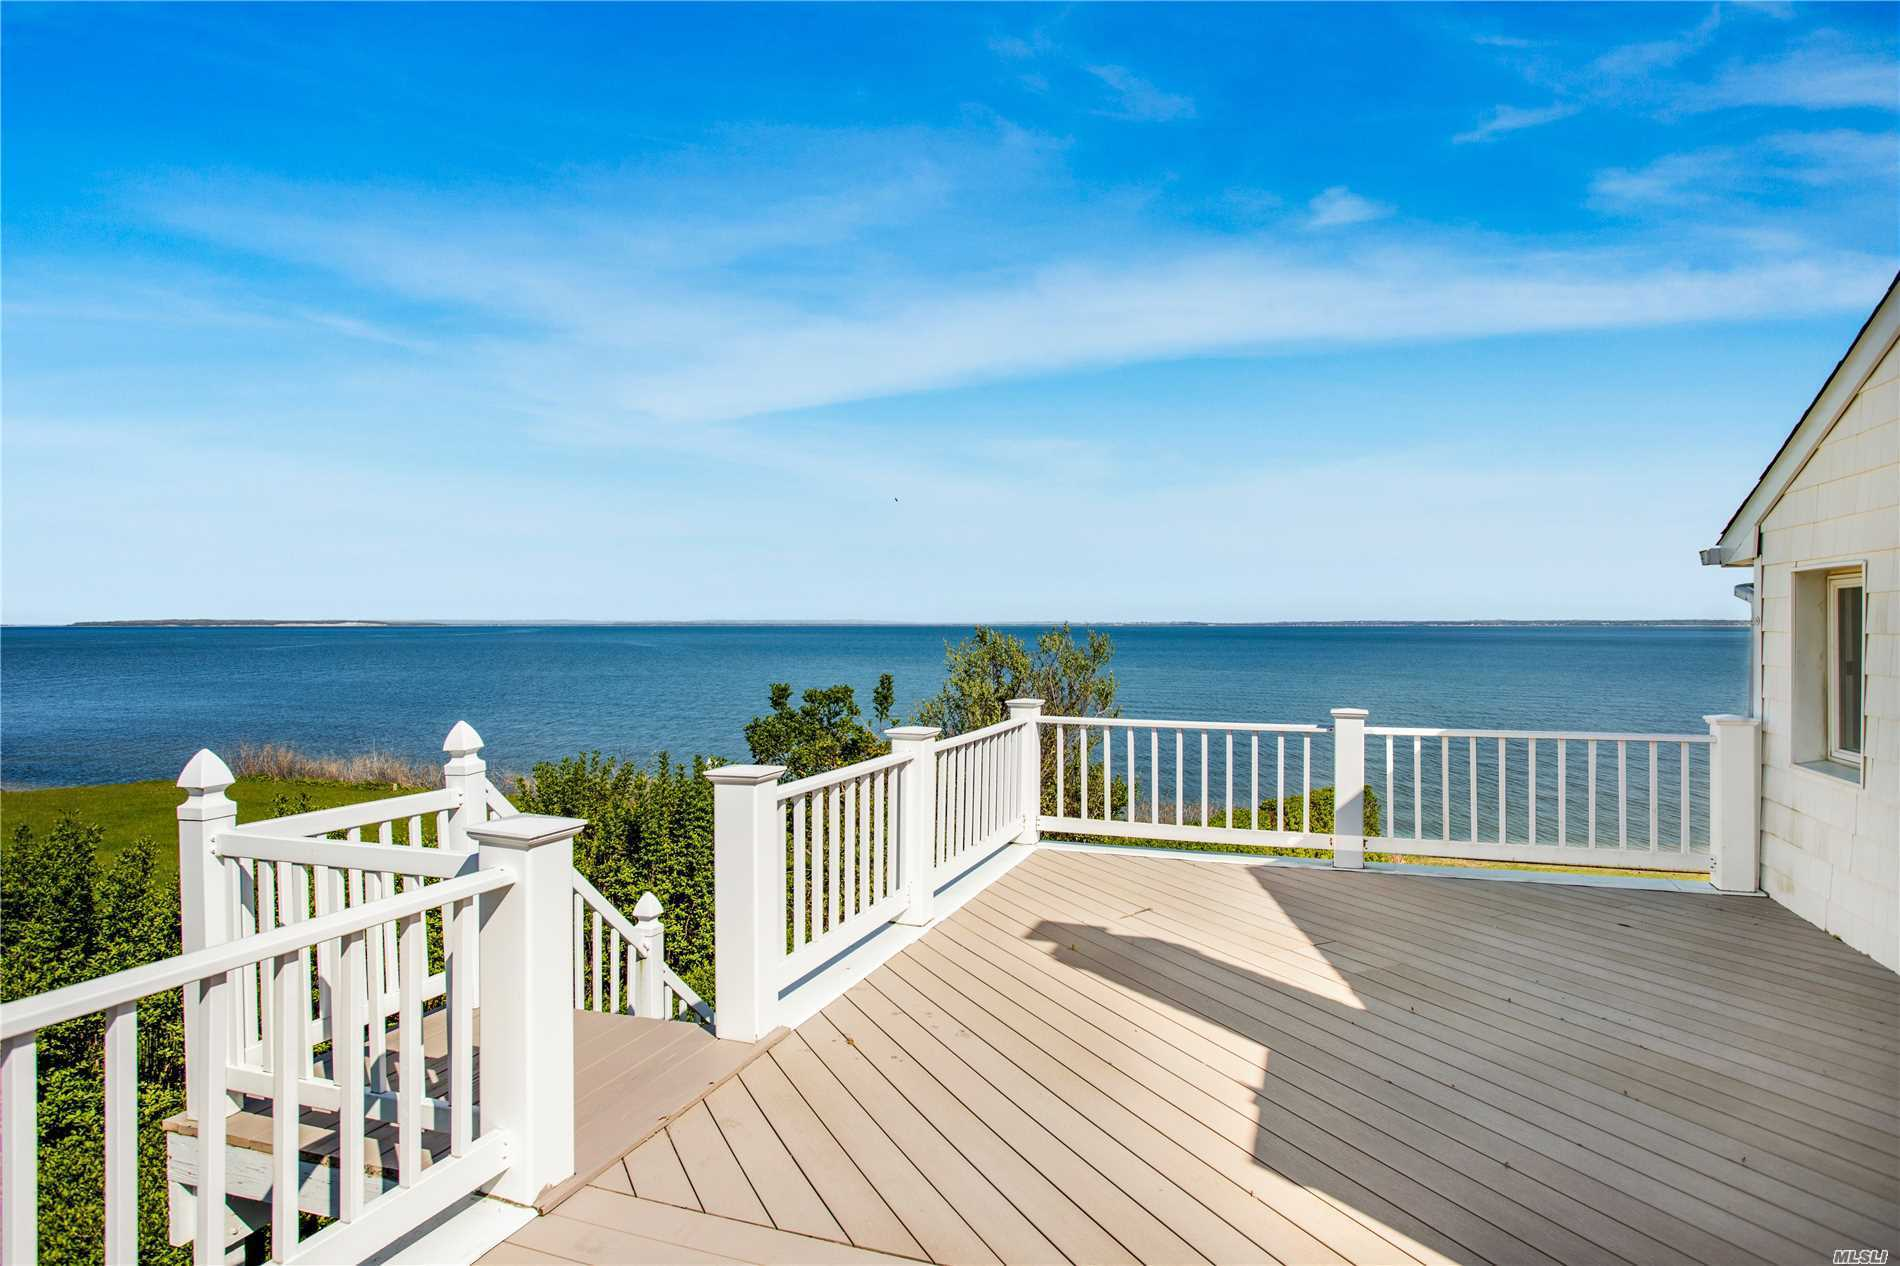 Classic, Pristine Peconic Bayfront Property with 127.72 of Bulkhead. Steps down to your Private Beachfront. Lavish on the Expansive & Lush Waterside Lawn, or Relax on the Topside Deck, while Enjoying the Magnificent Peconic Bay Views. Home boasts (4) beds, (3) baths, inclusive of Master En Suite, (1) Bed on First Floor. Formal Dining & Living Room w/Fireplace & added Sitting Area, to Soak up the Sun. Kitchen is Open Plan with Breakfast Bar, Opening into Den. Solar Panels on Roof is a Plus!